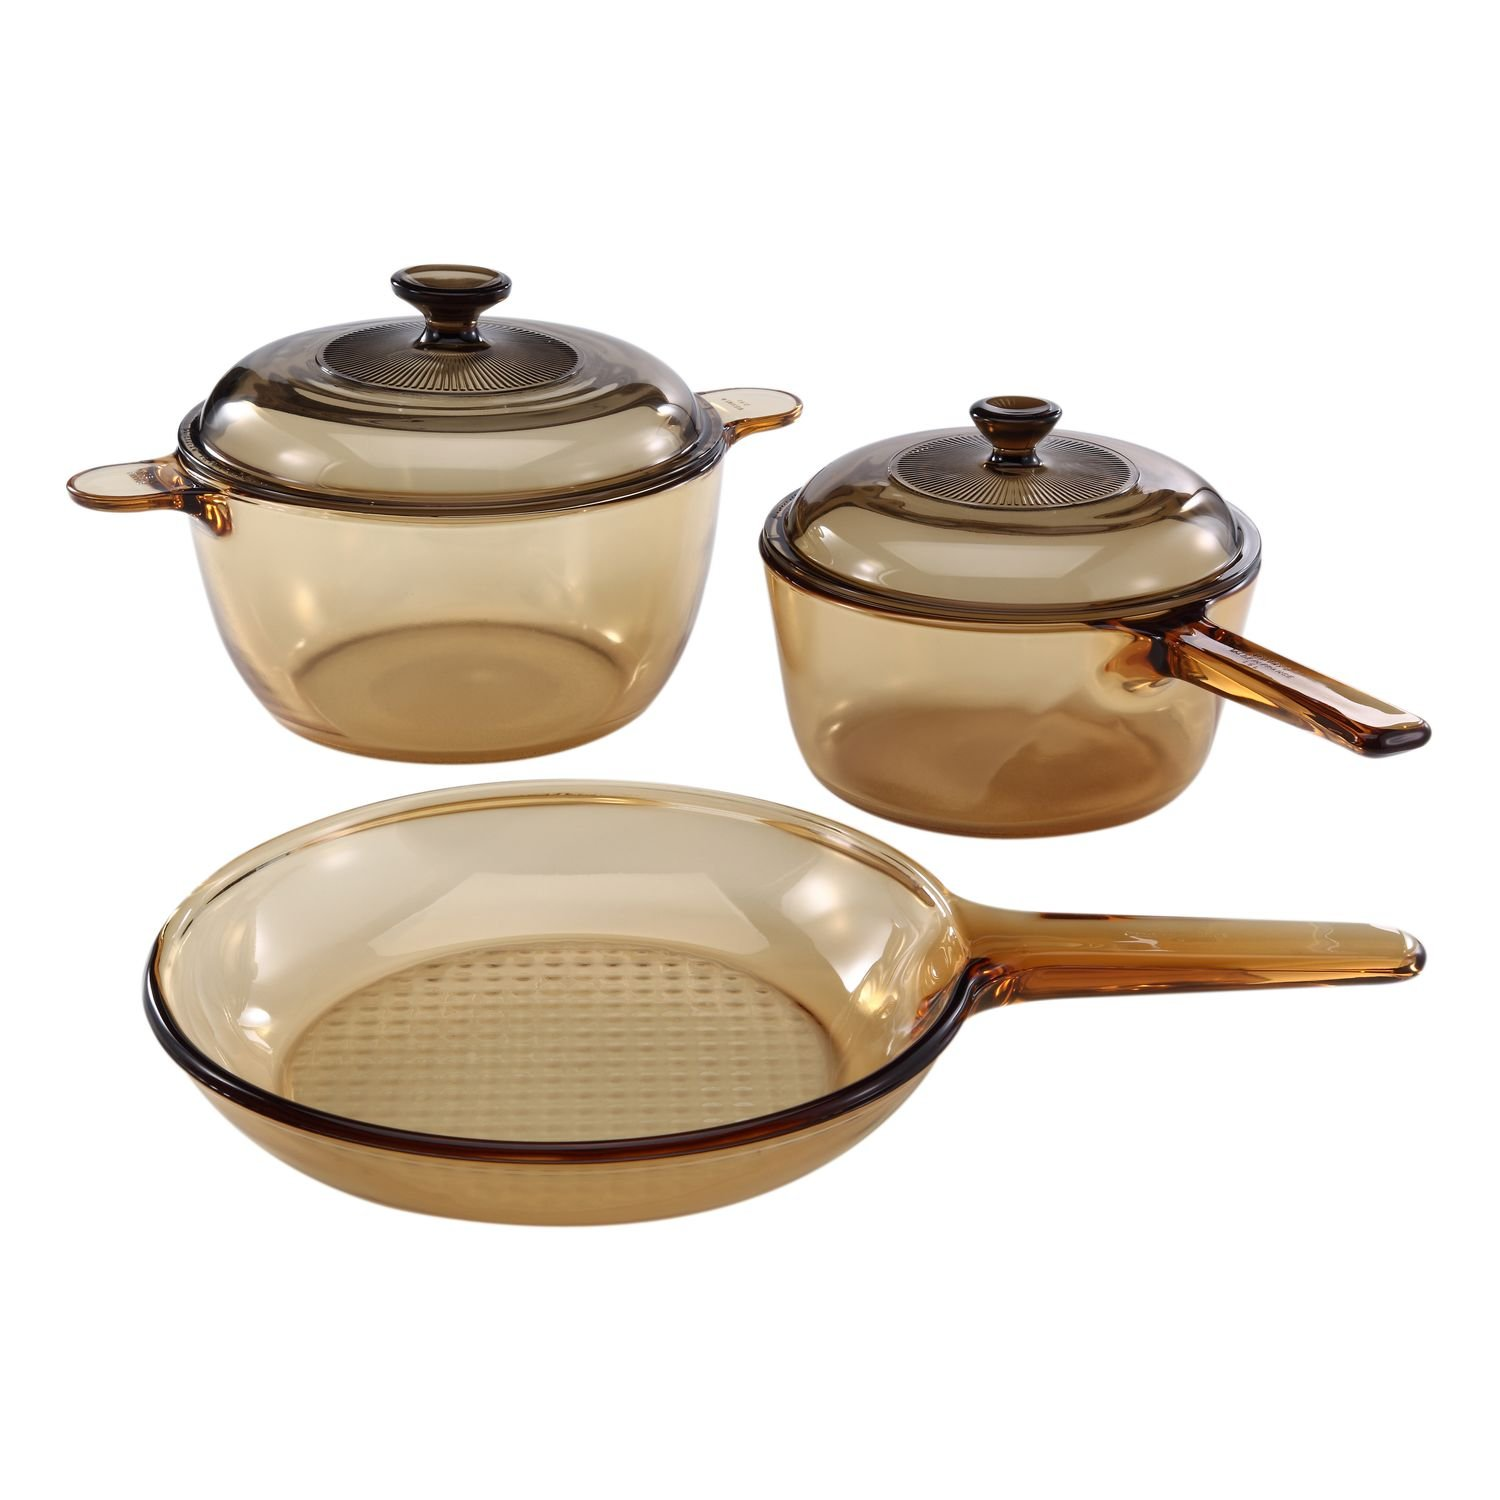 VISIONS 5-pc Cookware Set